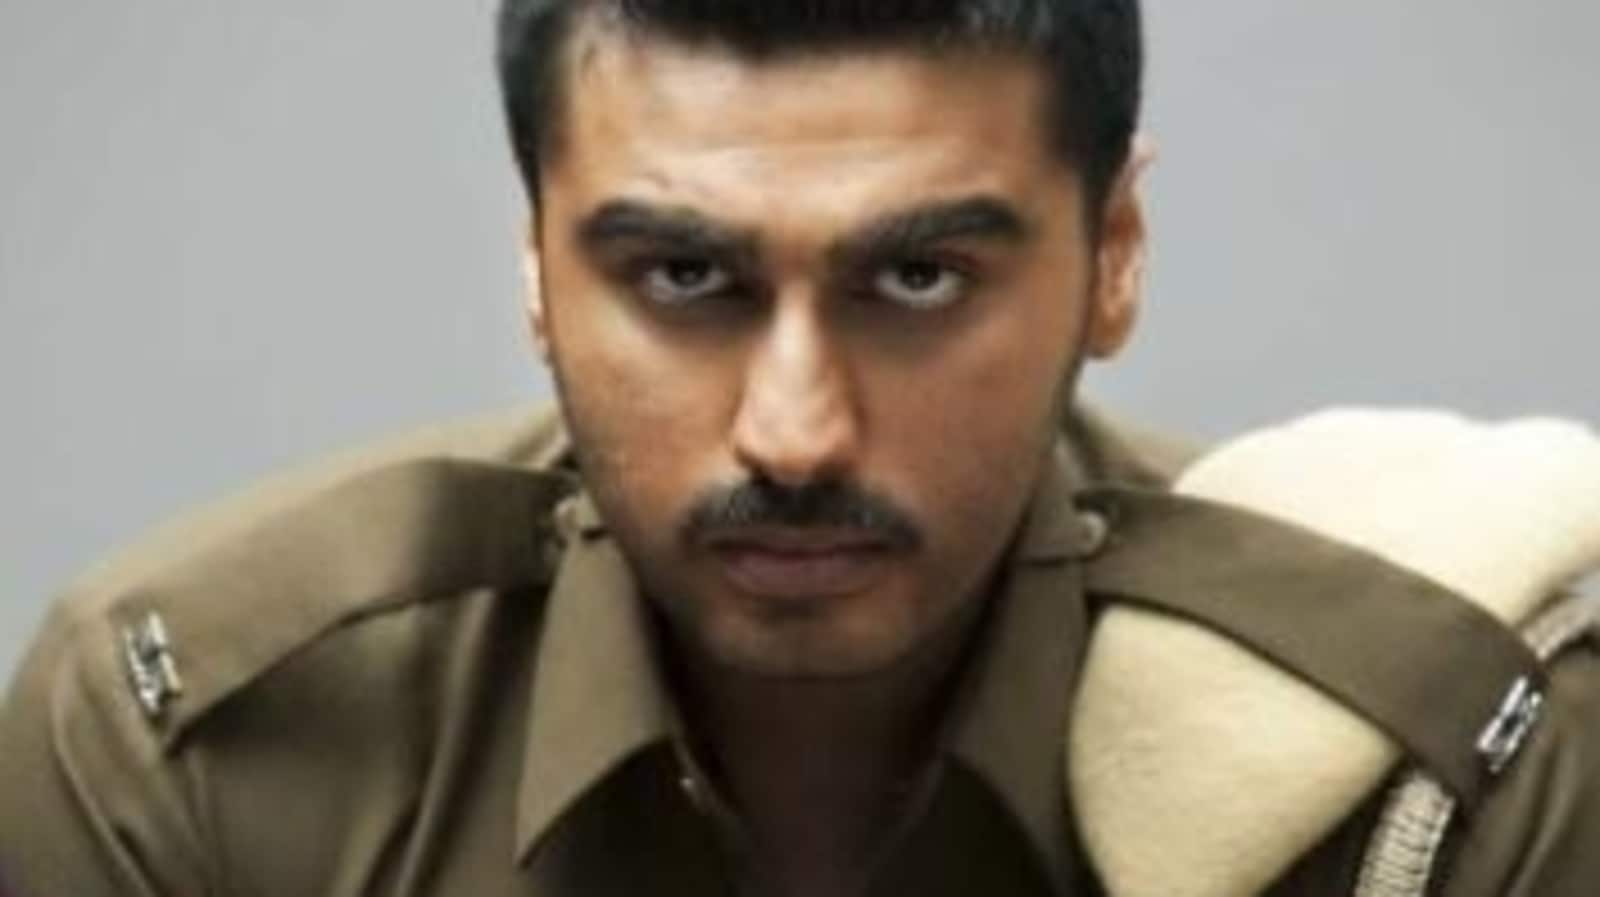 Arjun Kapoor on Sandeep Aur Pinky Faraar's success: 'Have offers from diverse filmmakers wanting to collaborate' -India News Cart